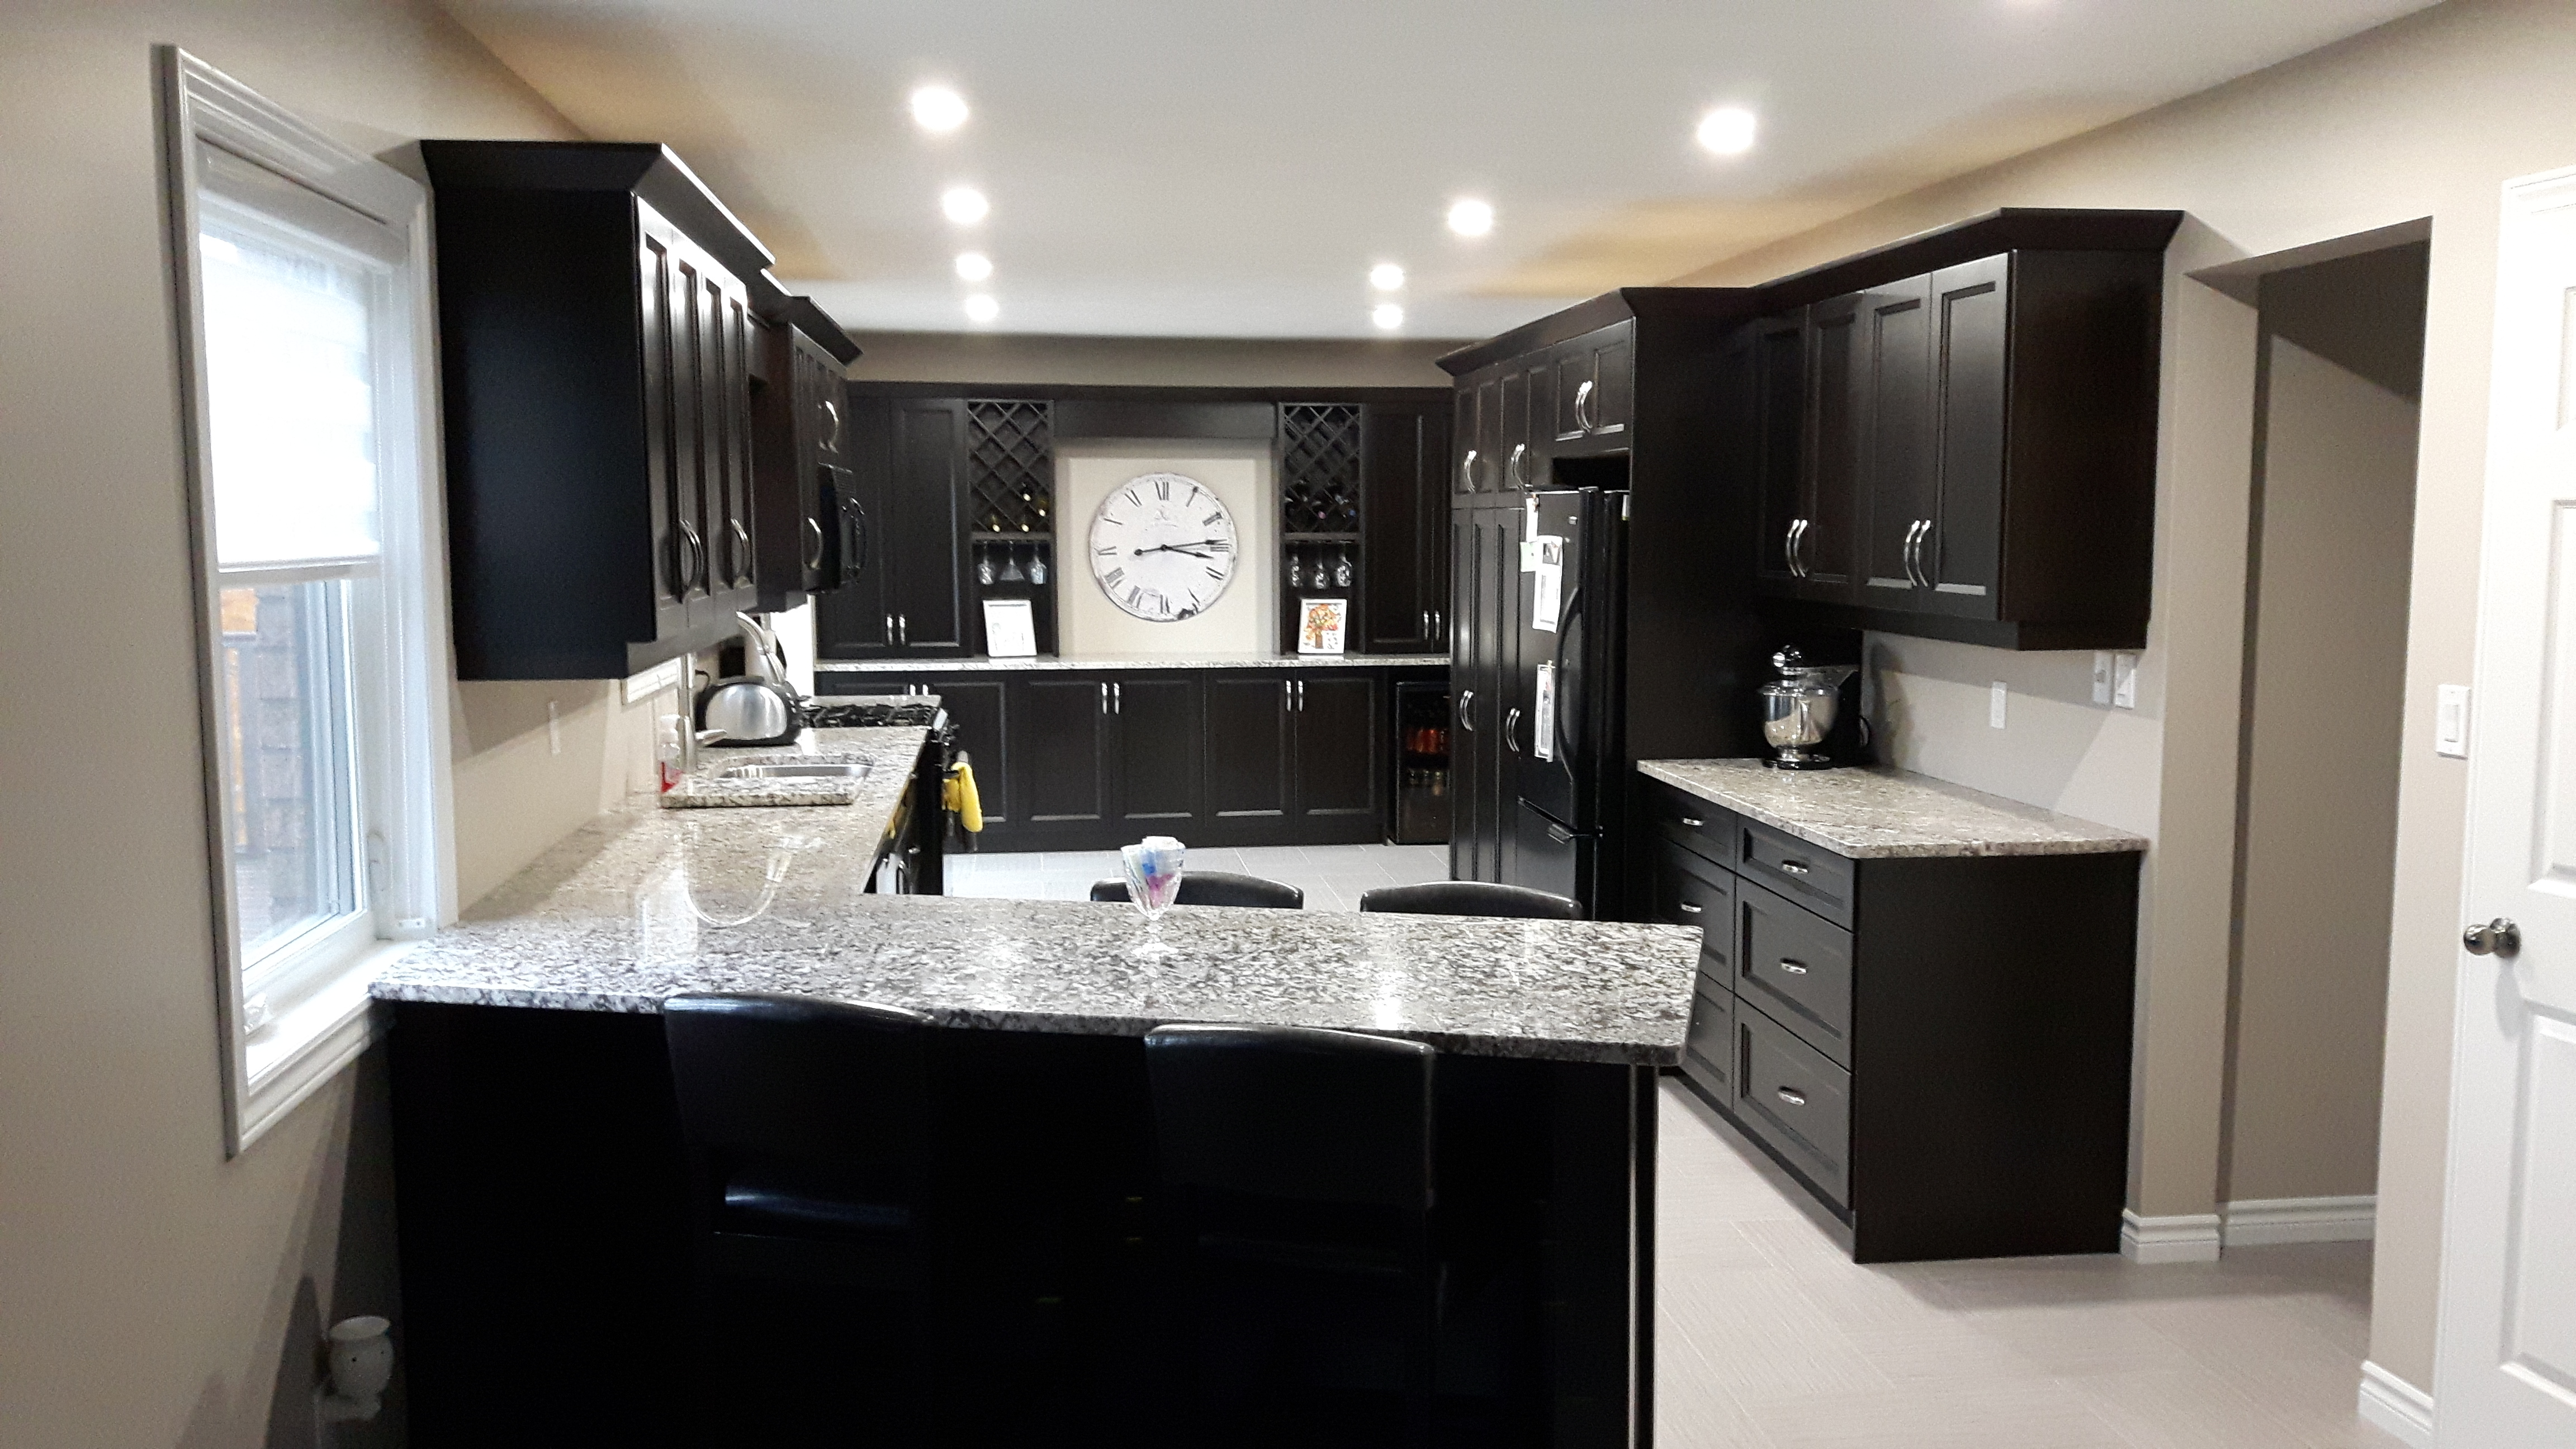 Browns custom kitchens countertops sinks and faucets